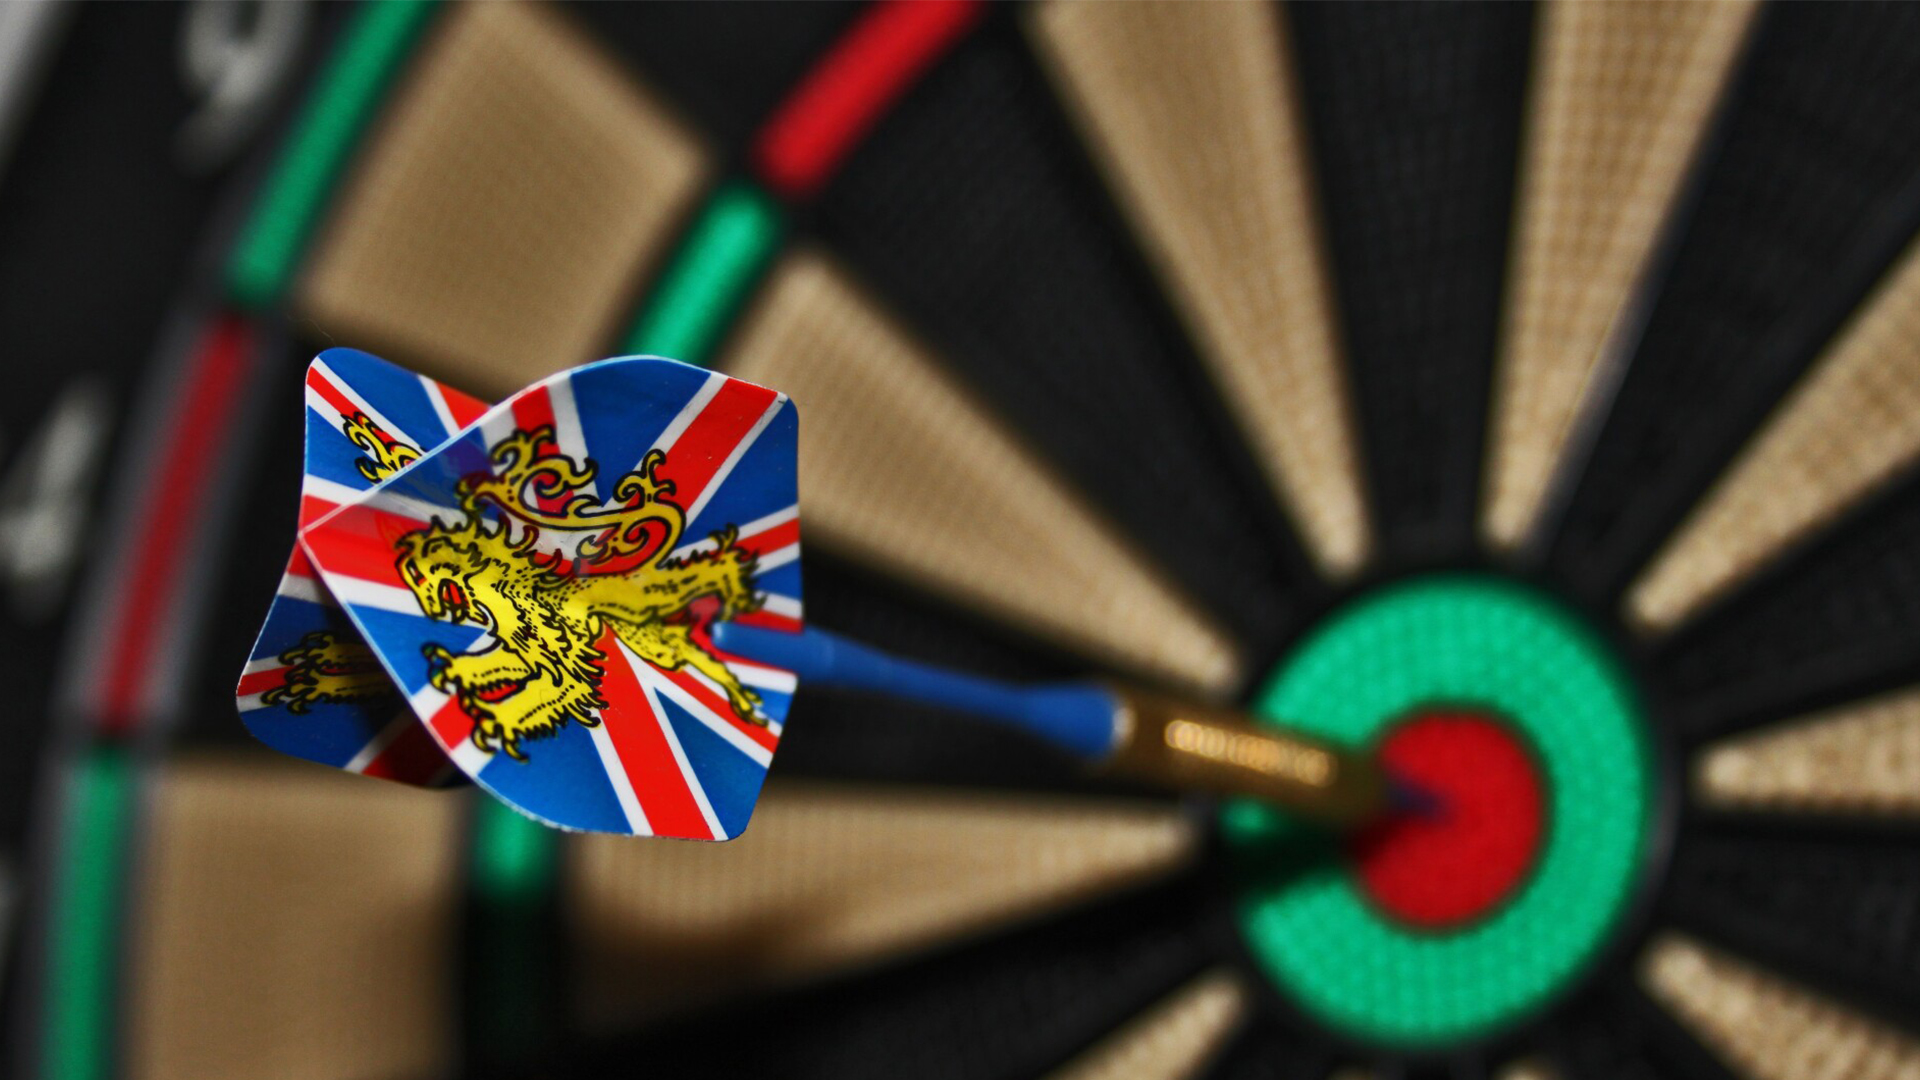 Basic Rules You Need to Know When Playing Darts